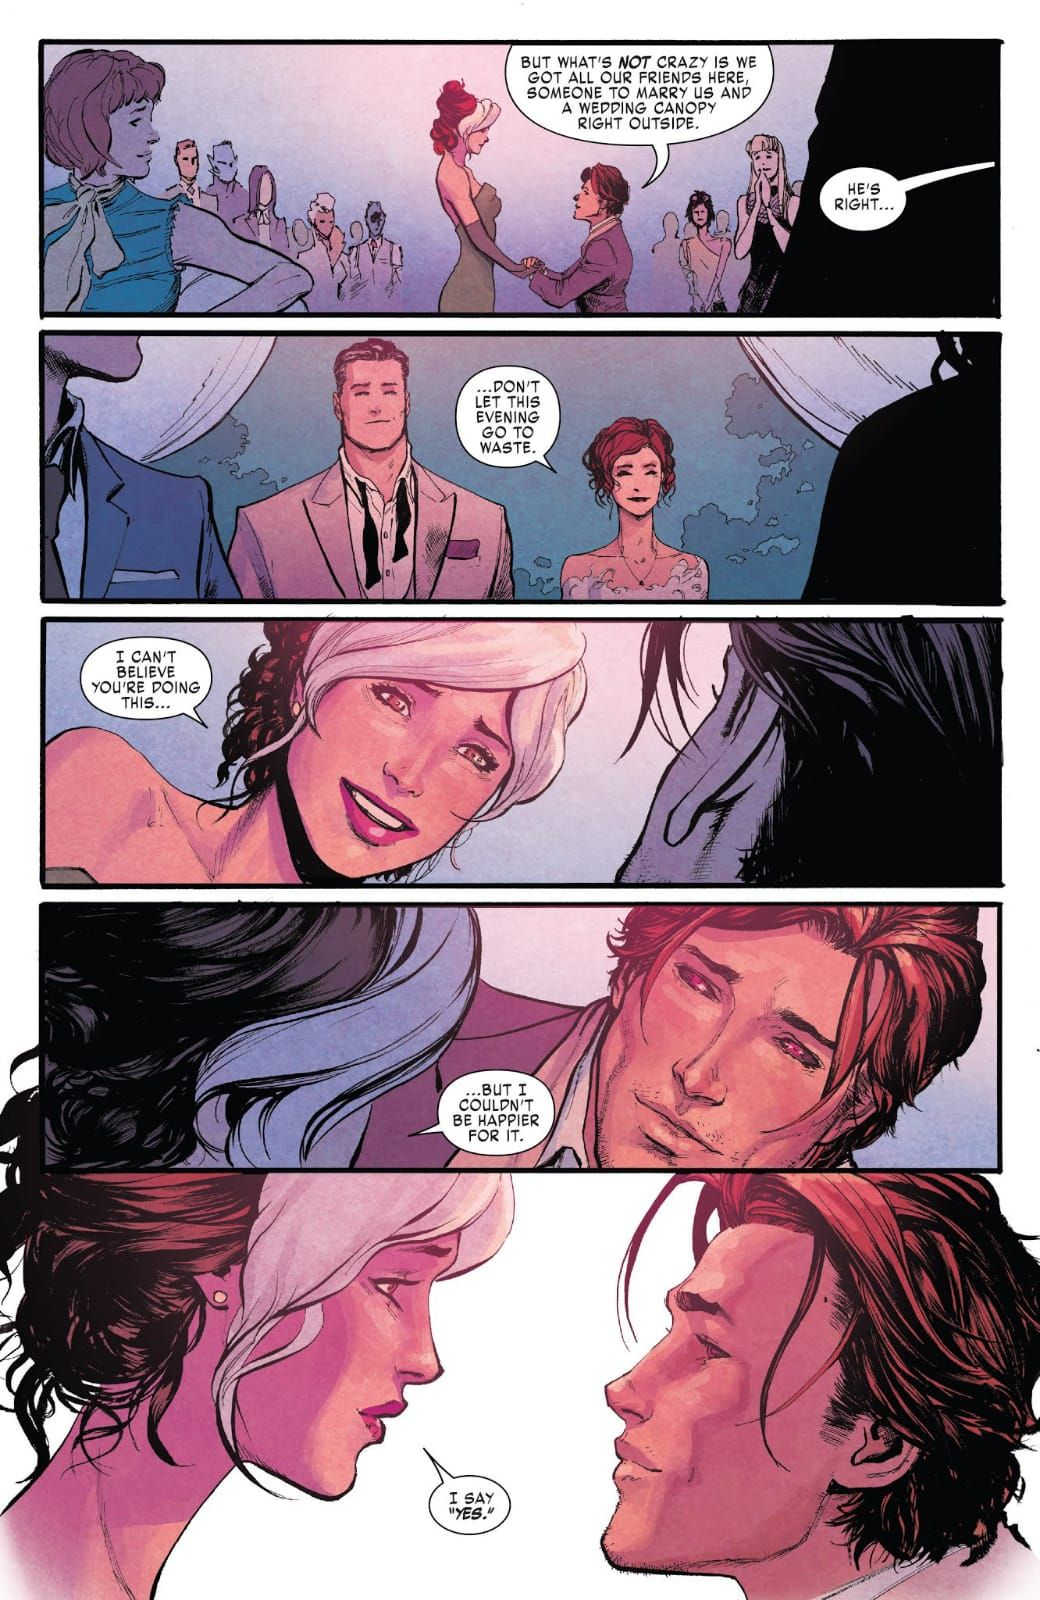 Pin by Kaylee Jones on Couples in 2020 Rogue gambit